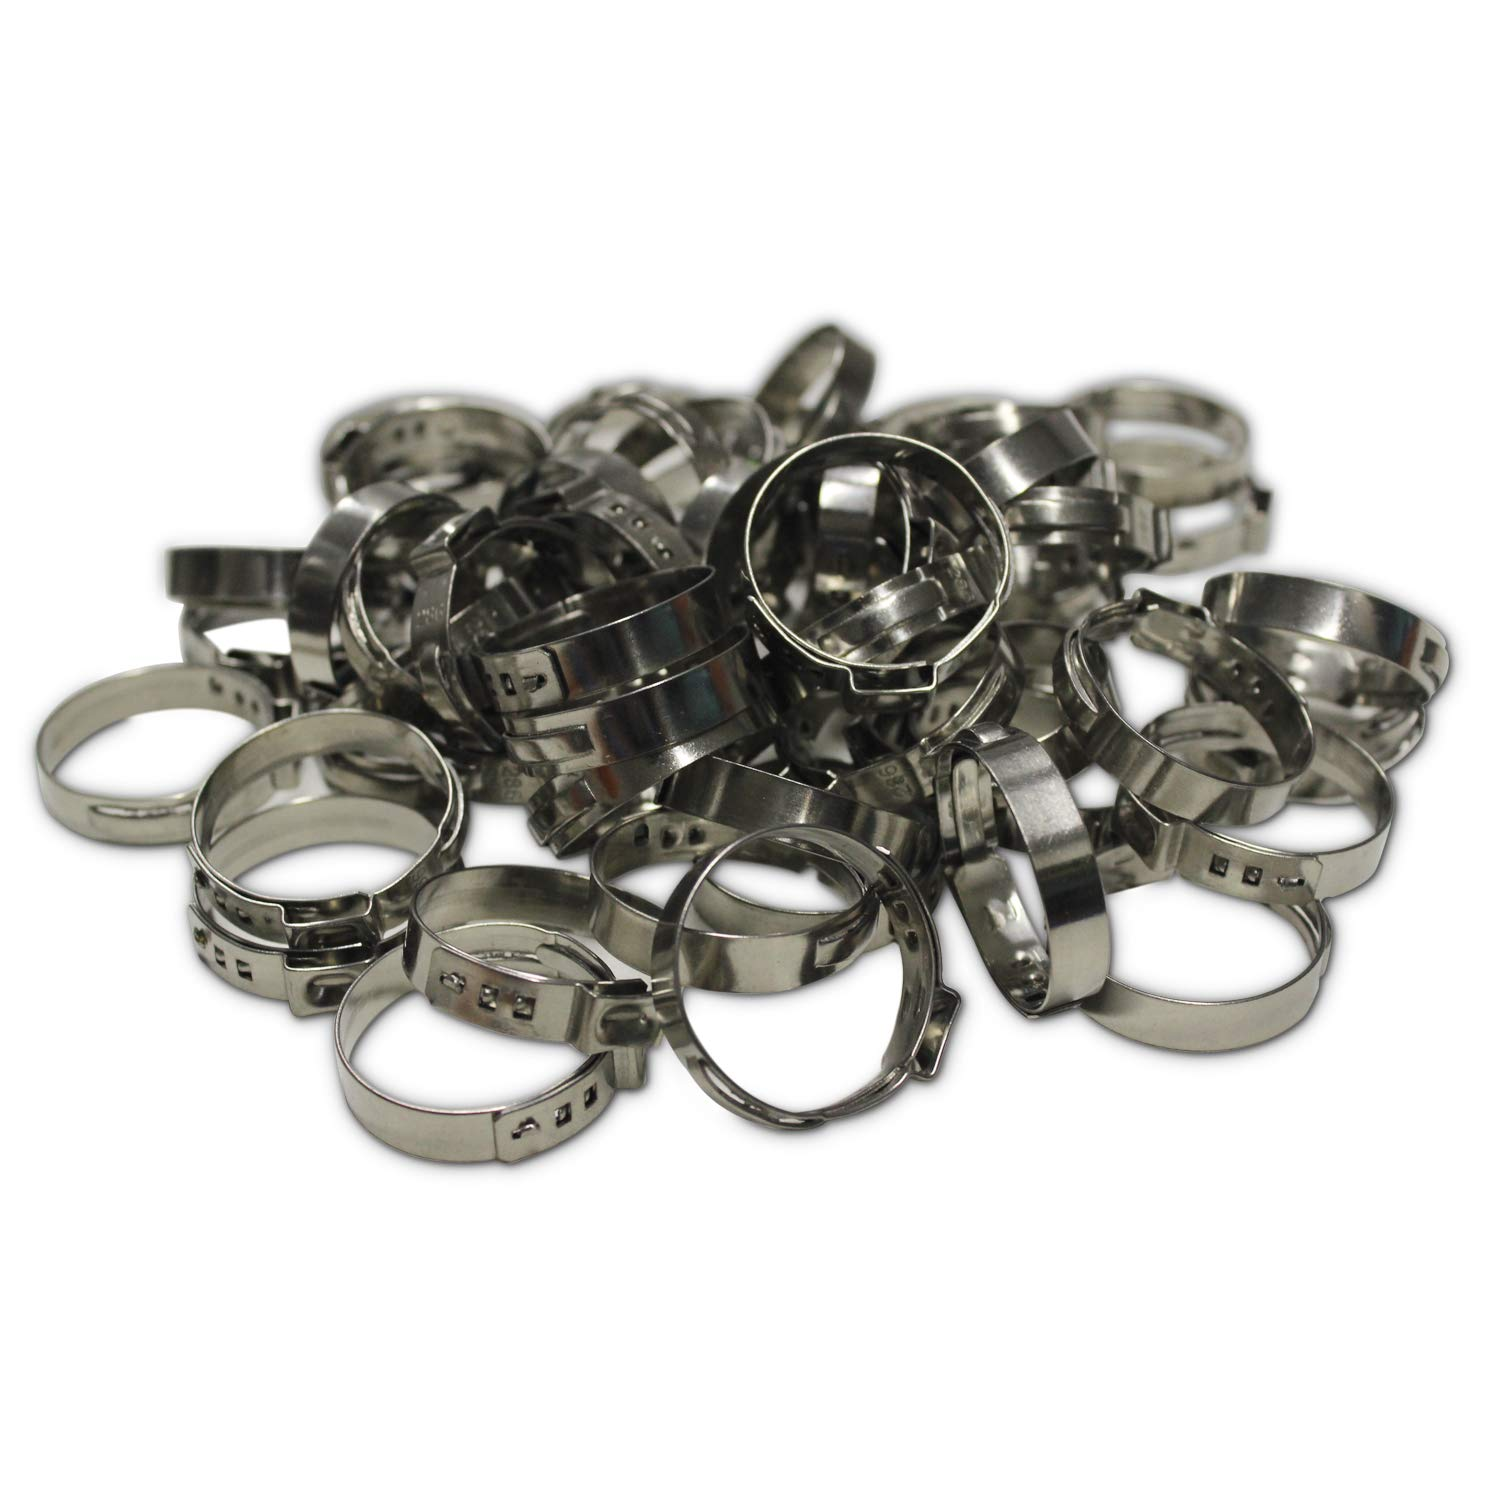 6-7mm WYKA 50 Pack 304 Stainless Steel Single Ear Hose Clamp,Crimp Pinch Fitting,Fuel Line Hose Clips Water Pipe Air Tube Silicone Vacuum Hose Clamp Fastener 1//4-9//32